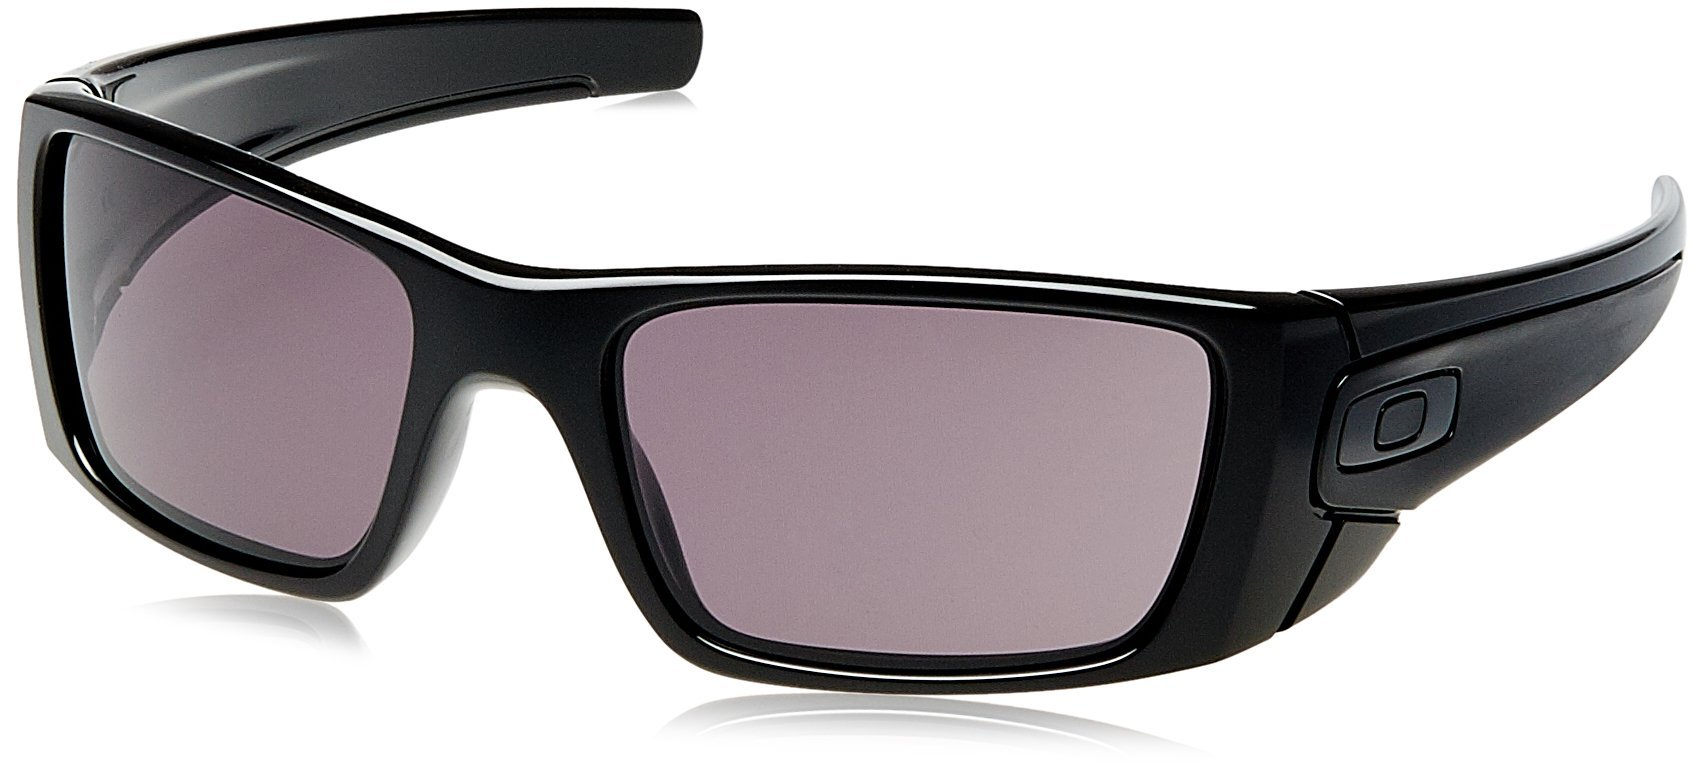 Oakley Fuel Cell Rectangular Sunglasses,Polished Black Frame/Warm Grey Lens,one size by Oakley